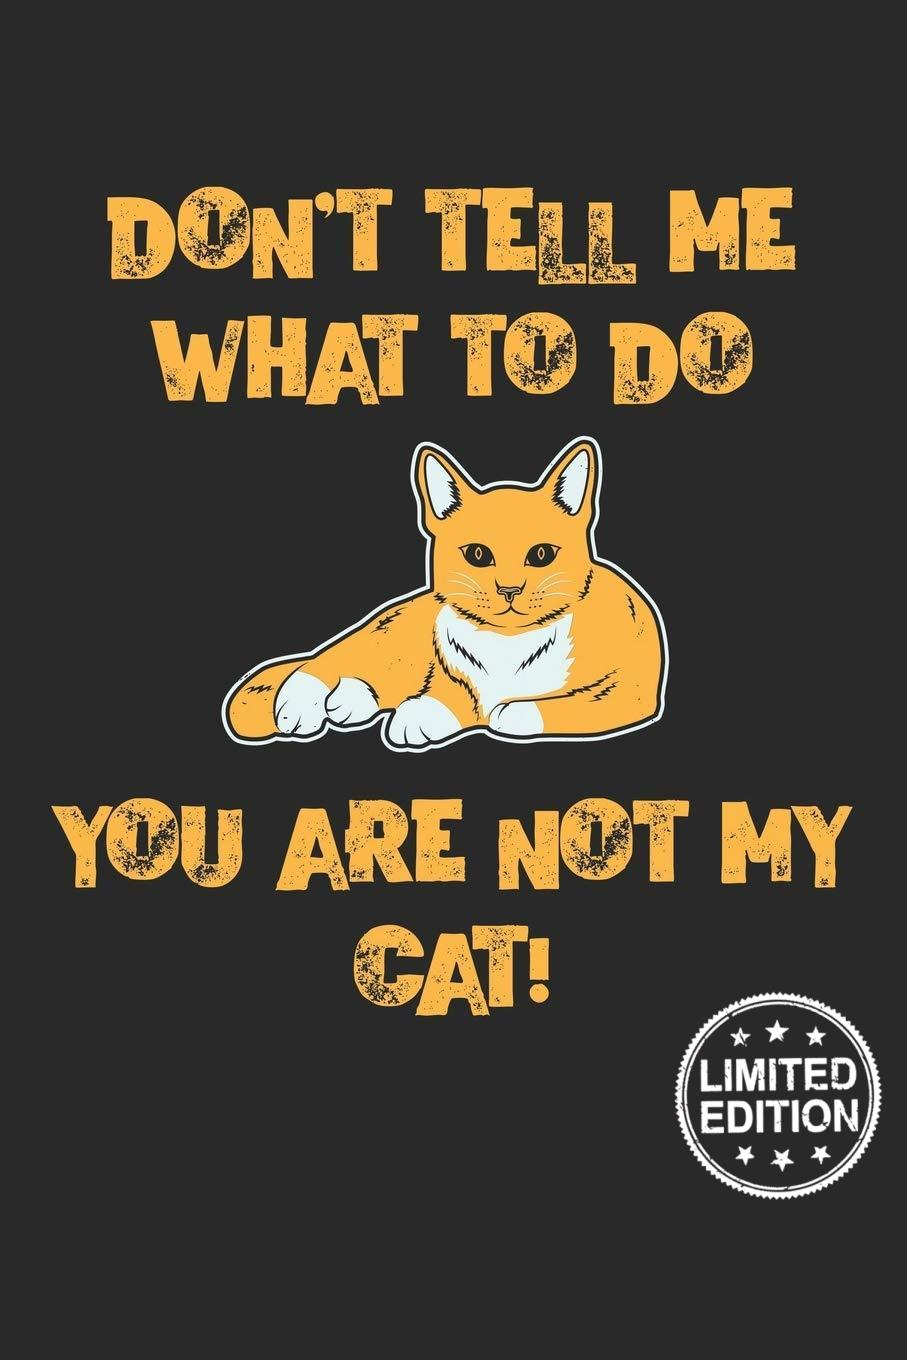 Don't tell me what to do you are not my cat shirt